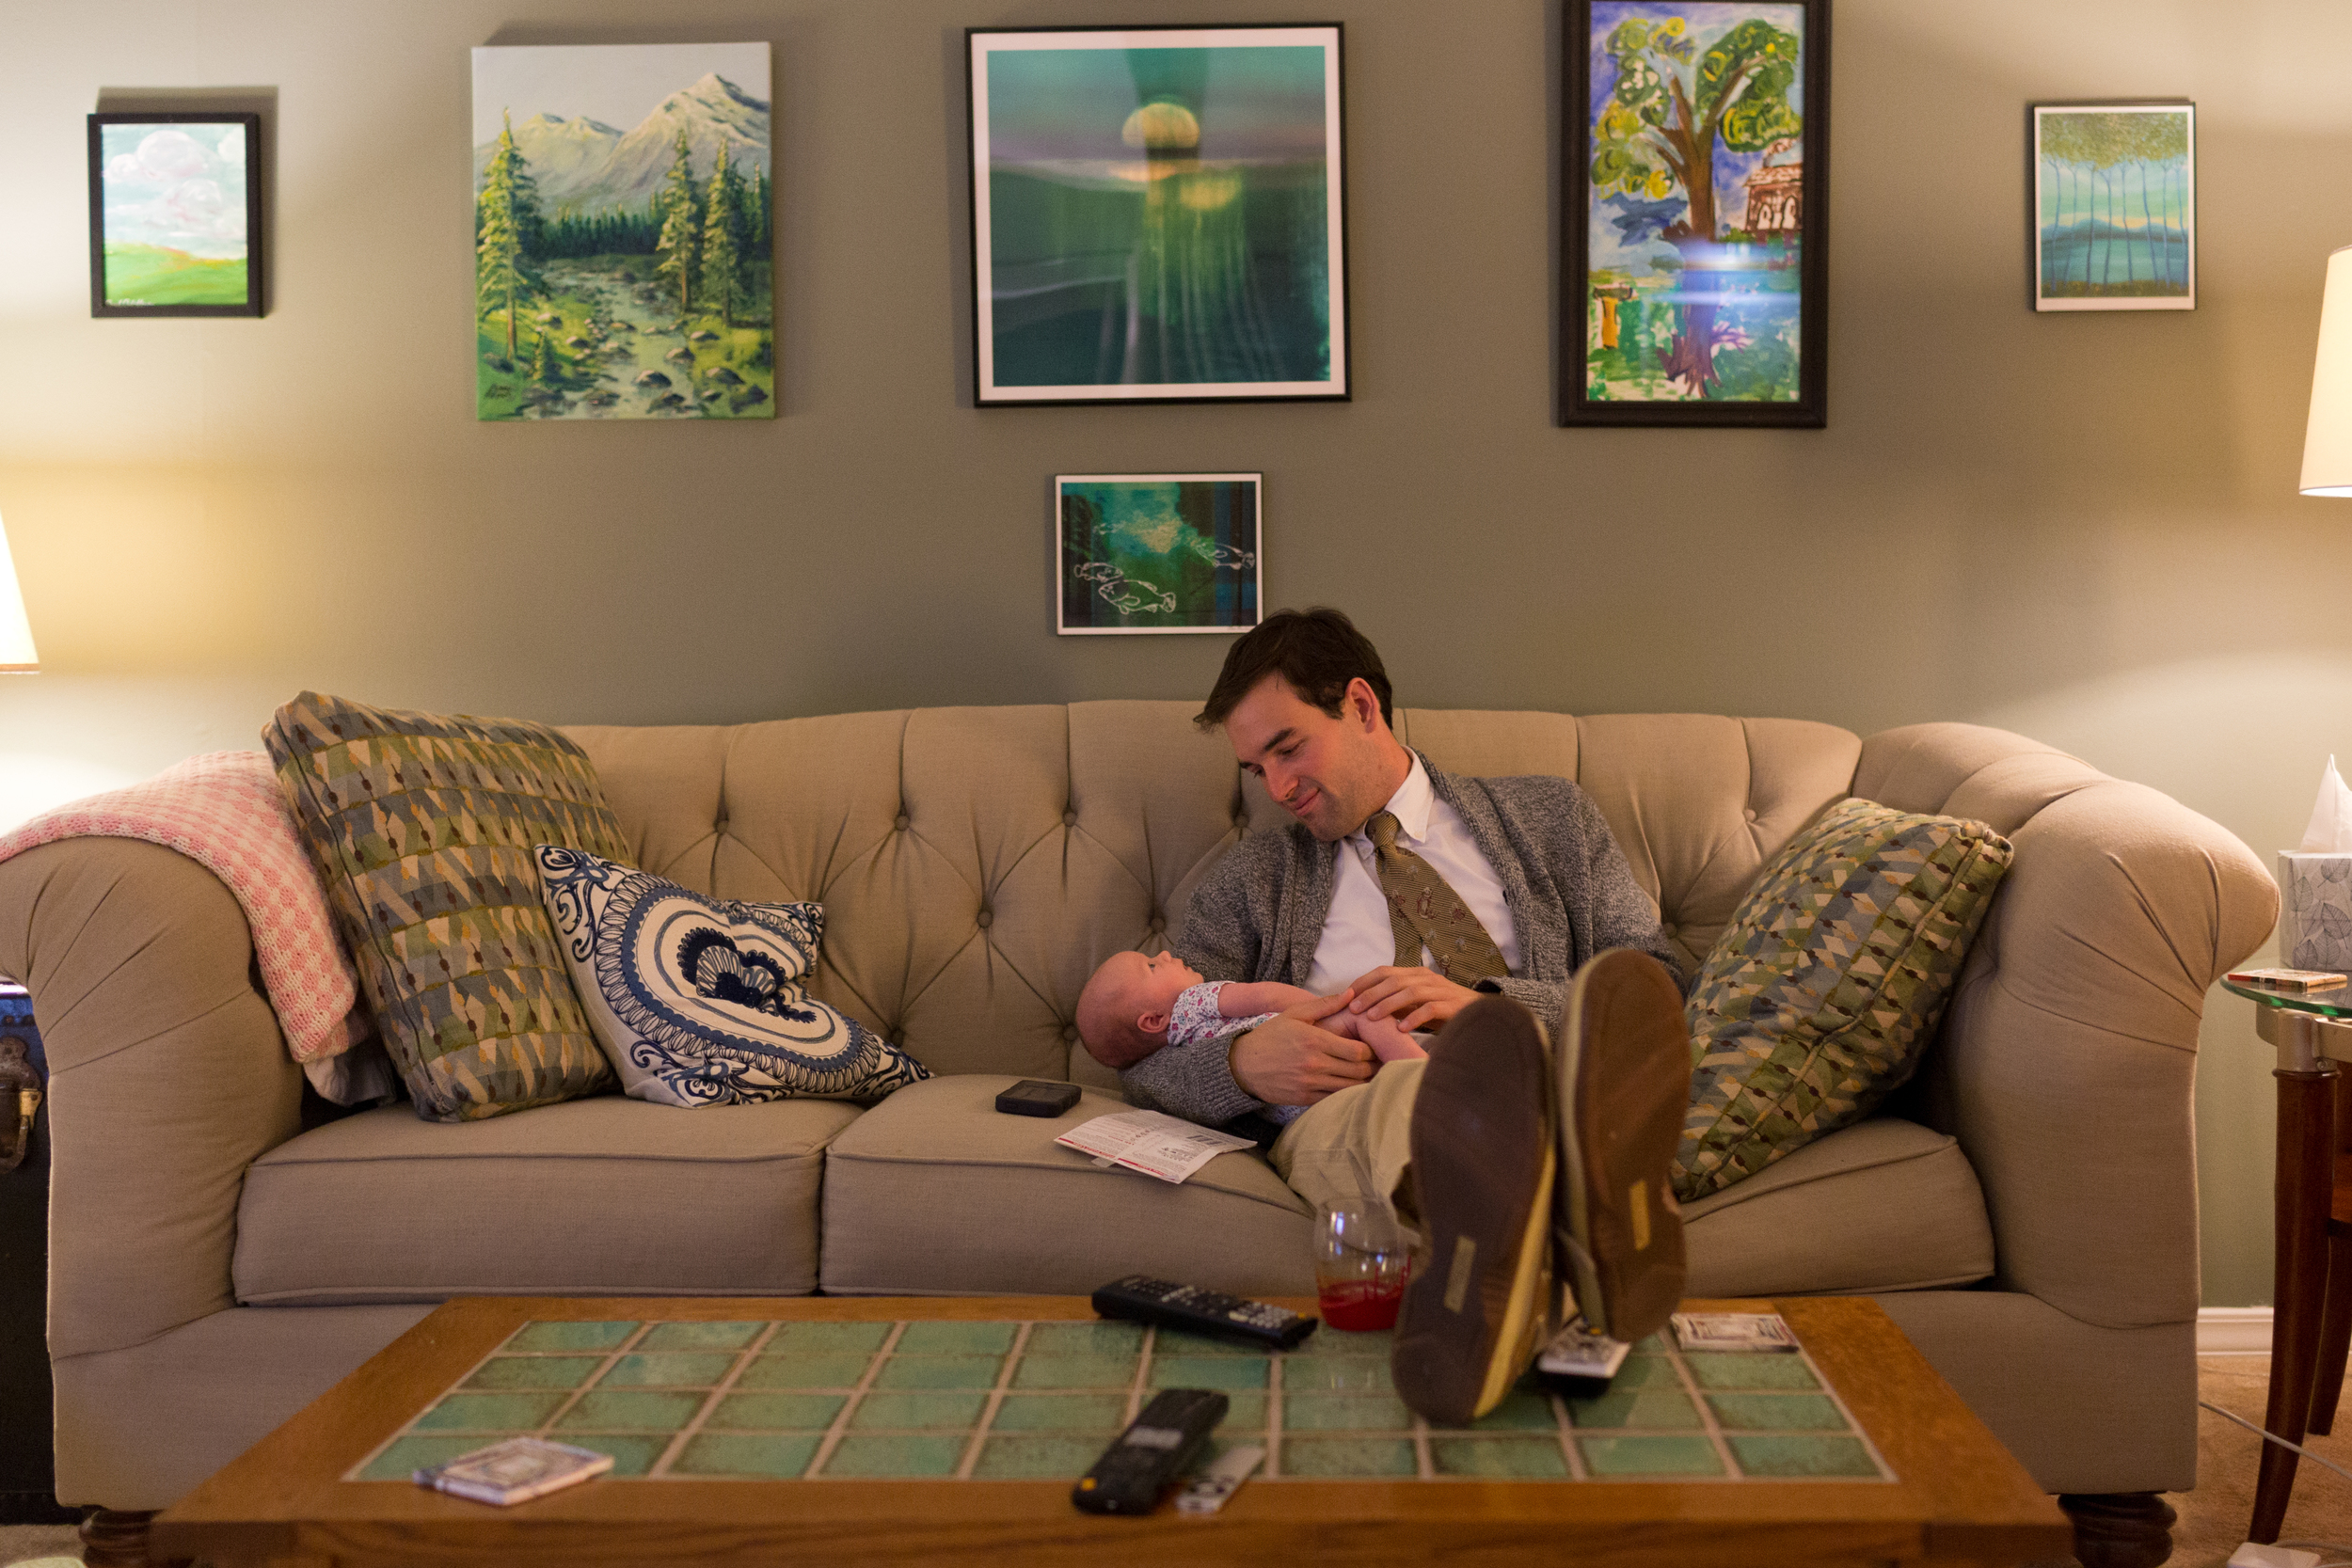 uncle sitting on couch with baby niece